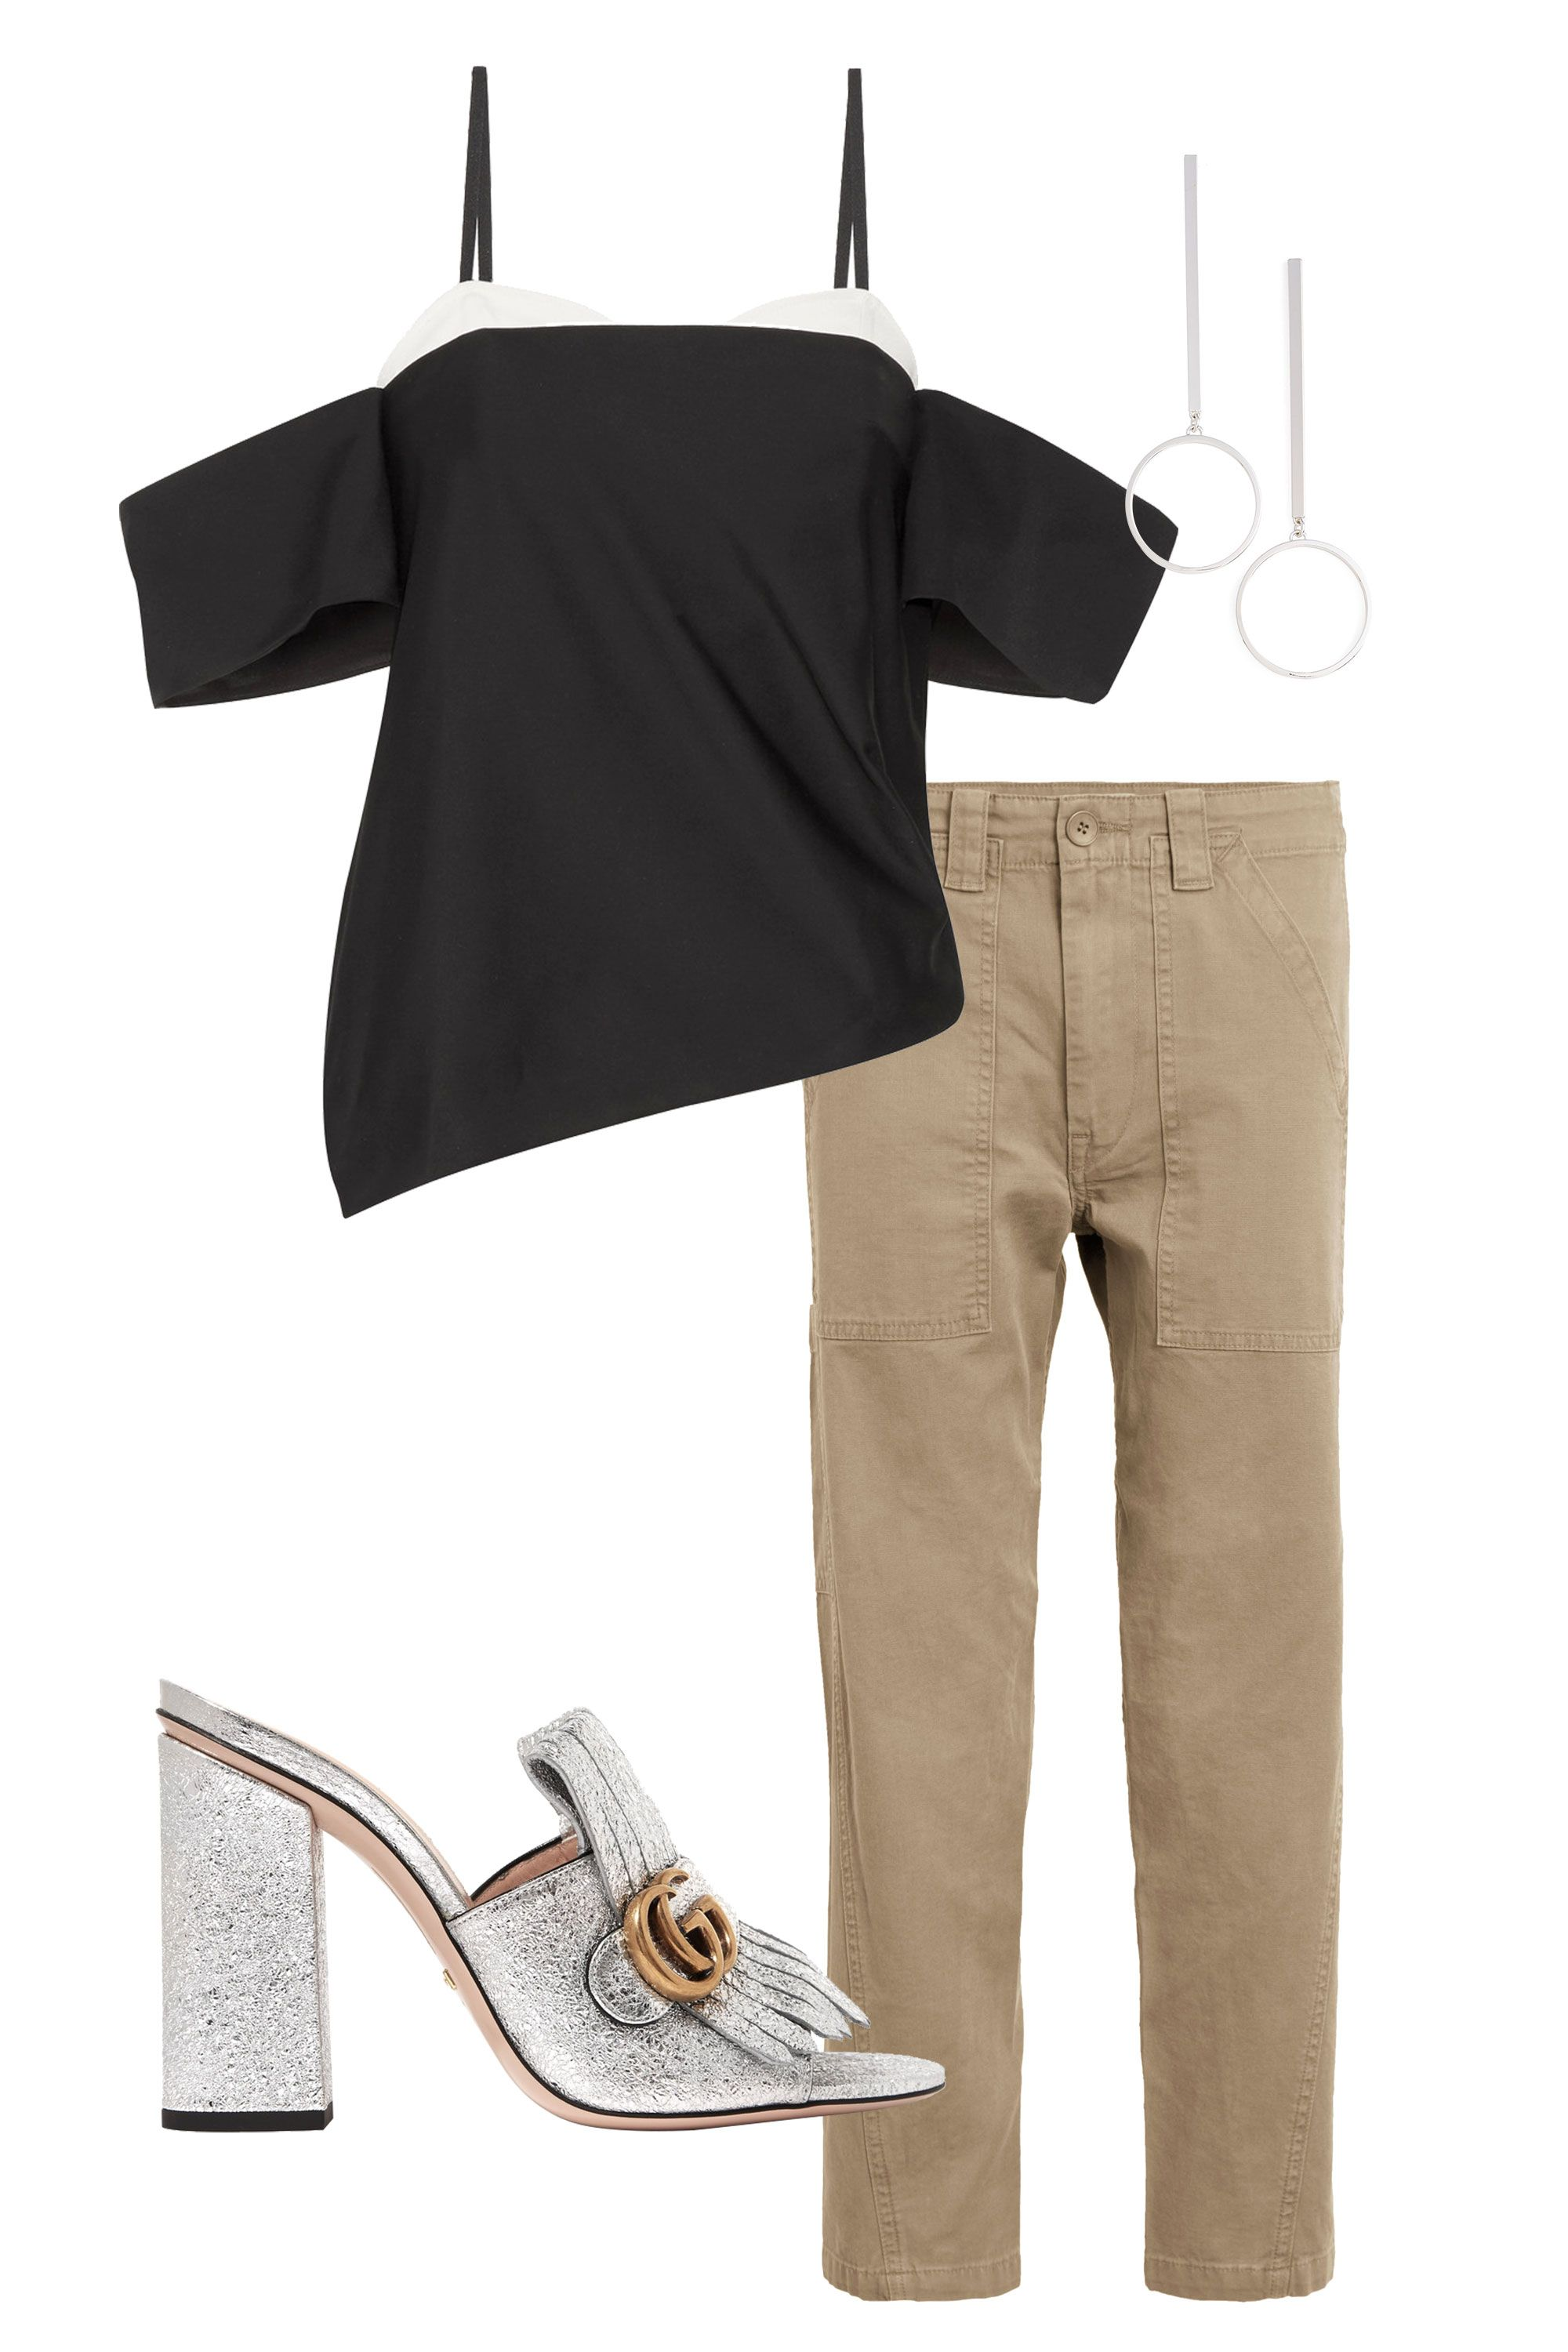 "<p>Don't let the color fool you—khaki pants can be just as chic as traditional black once the sun goes down. Just add a metallic shoe, bold earrings, and a standout top.</p><p><span class=""redactor-invisible-space"" data-verified=""redactor"" data-redactor-tag=""span"" data-redactor-class=""redactor-invisible-space""></span></p><p><span class=""redactor-invisible-space"" data-verified=""redactor"" data-redactor-tag=""span"" data-redactor-class=""redactor-invisible-space""><em data-redactor-tag=""em""><em data-redactor-tag=""em"">Vince military pants, $245, <a href=""http://shop.nordstrom.com/s/vince-military-pants/4549120?origin=keywordsearch-personalizedsort&fashioncolor=OLIVE"" target=""_blank"" data-tracking-id=""recirc-text-link"">nordstrom.com</a>; Tibi top, $395, <a href=""http://shop.nordstrom.com/s/tibi-stretch-faille-contrast-off-the-shoulder-corset-top/4498015?origin=coordinating-4498015-0-2-ZERO-Rich_Relevance_Recs_API-SolrSearchToView&recs_type=coordinating&recs_productId=4498015&recs_categoryId=0&recs_productOrder=2&recs_placementId=ZERO&recs_strategy=SolrSearchToView&recs_source=Rich_Relevance_Recs_API&recs_referringPageType=search_page&recs_turl=a%3D469cc5818c1eb6ac%26cak%3D3c86c35d5f315680%26vg%3D2a58bc60-aff9-4865-8291-295690cf46e7%26stid%3D98%26pti%3D2%26pa%3D2040%26pos%3D1%26p%3D5274750%26channelId%3D3c86c35d5f315680%26s%3D0bcd9d3d-3db3-4135-98c9-7dca108e6639%26u%3D31f554a48b1343d7bf76e76d21e9f143"" target=""_blank"" data-tracking-id=""recirc-text-link"">nordstrom.com</a>; Gucci shoes, $795, <a href=""https://www.gucci.com/us/en/pr/women/womens-shoes/womens-slides-mules/metallic-leather-mid-heel-slide-p-453495DKT008106?position=16&listName=ProductGridComponent&categoryPath=Women/Womens-Shoes/Womens-Slides-Mules"" target=""_blank"" data-tracking-id=""recirc-text-link"">gucci.com</a>; Jenny Bird earrings, $65, <a href=""http://shop.nordstrom.com/s/jenny-bird-edie-hoop-earrings/4532663?origin=keywordsearch-personalizedsort&fashioncolor=SILVER"" target=""_blank"" data-tracking-id=""recirc-text-link"">nordstrom.com</a></em></em><br></span></p>"